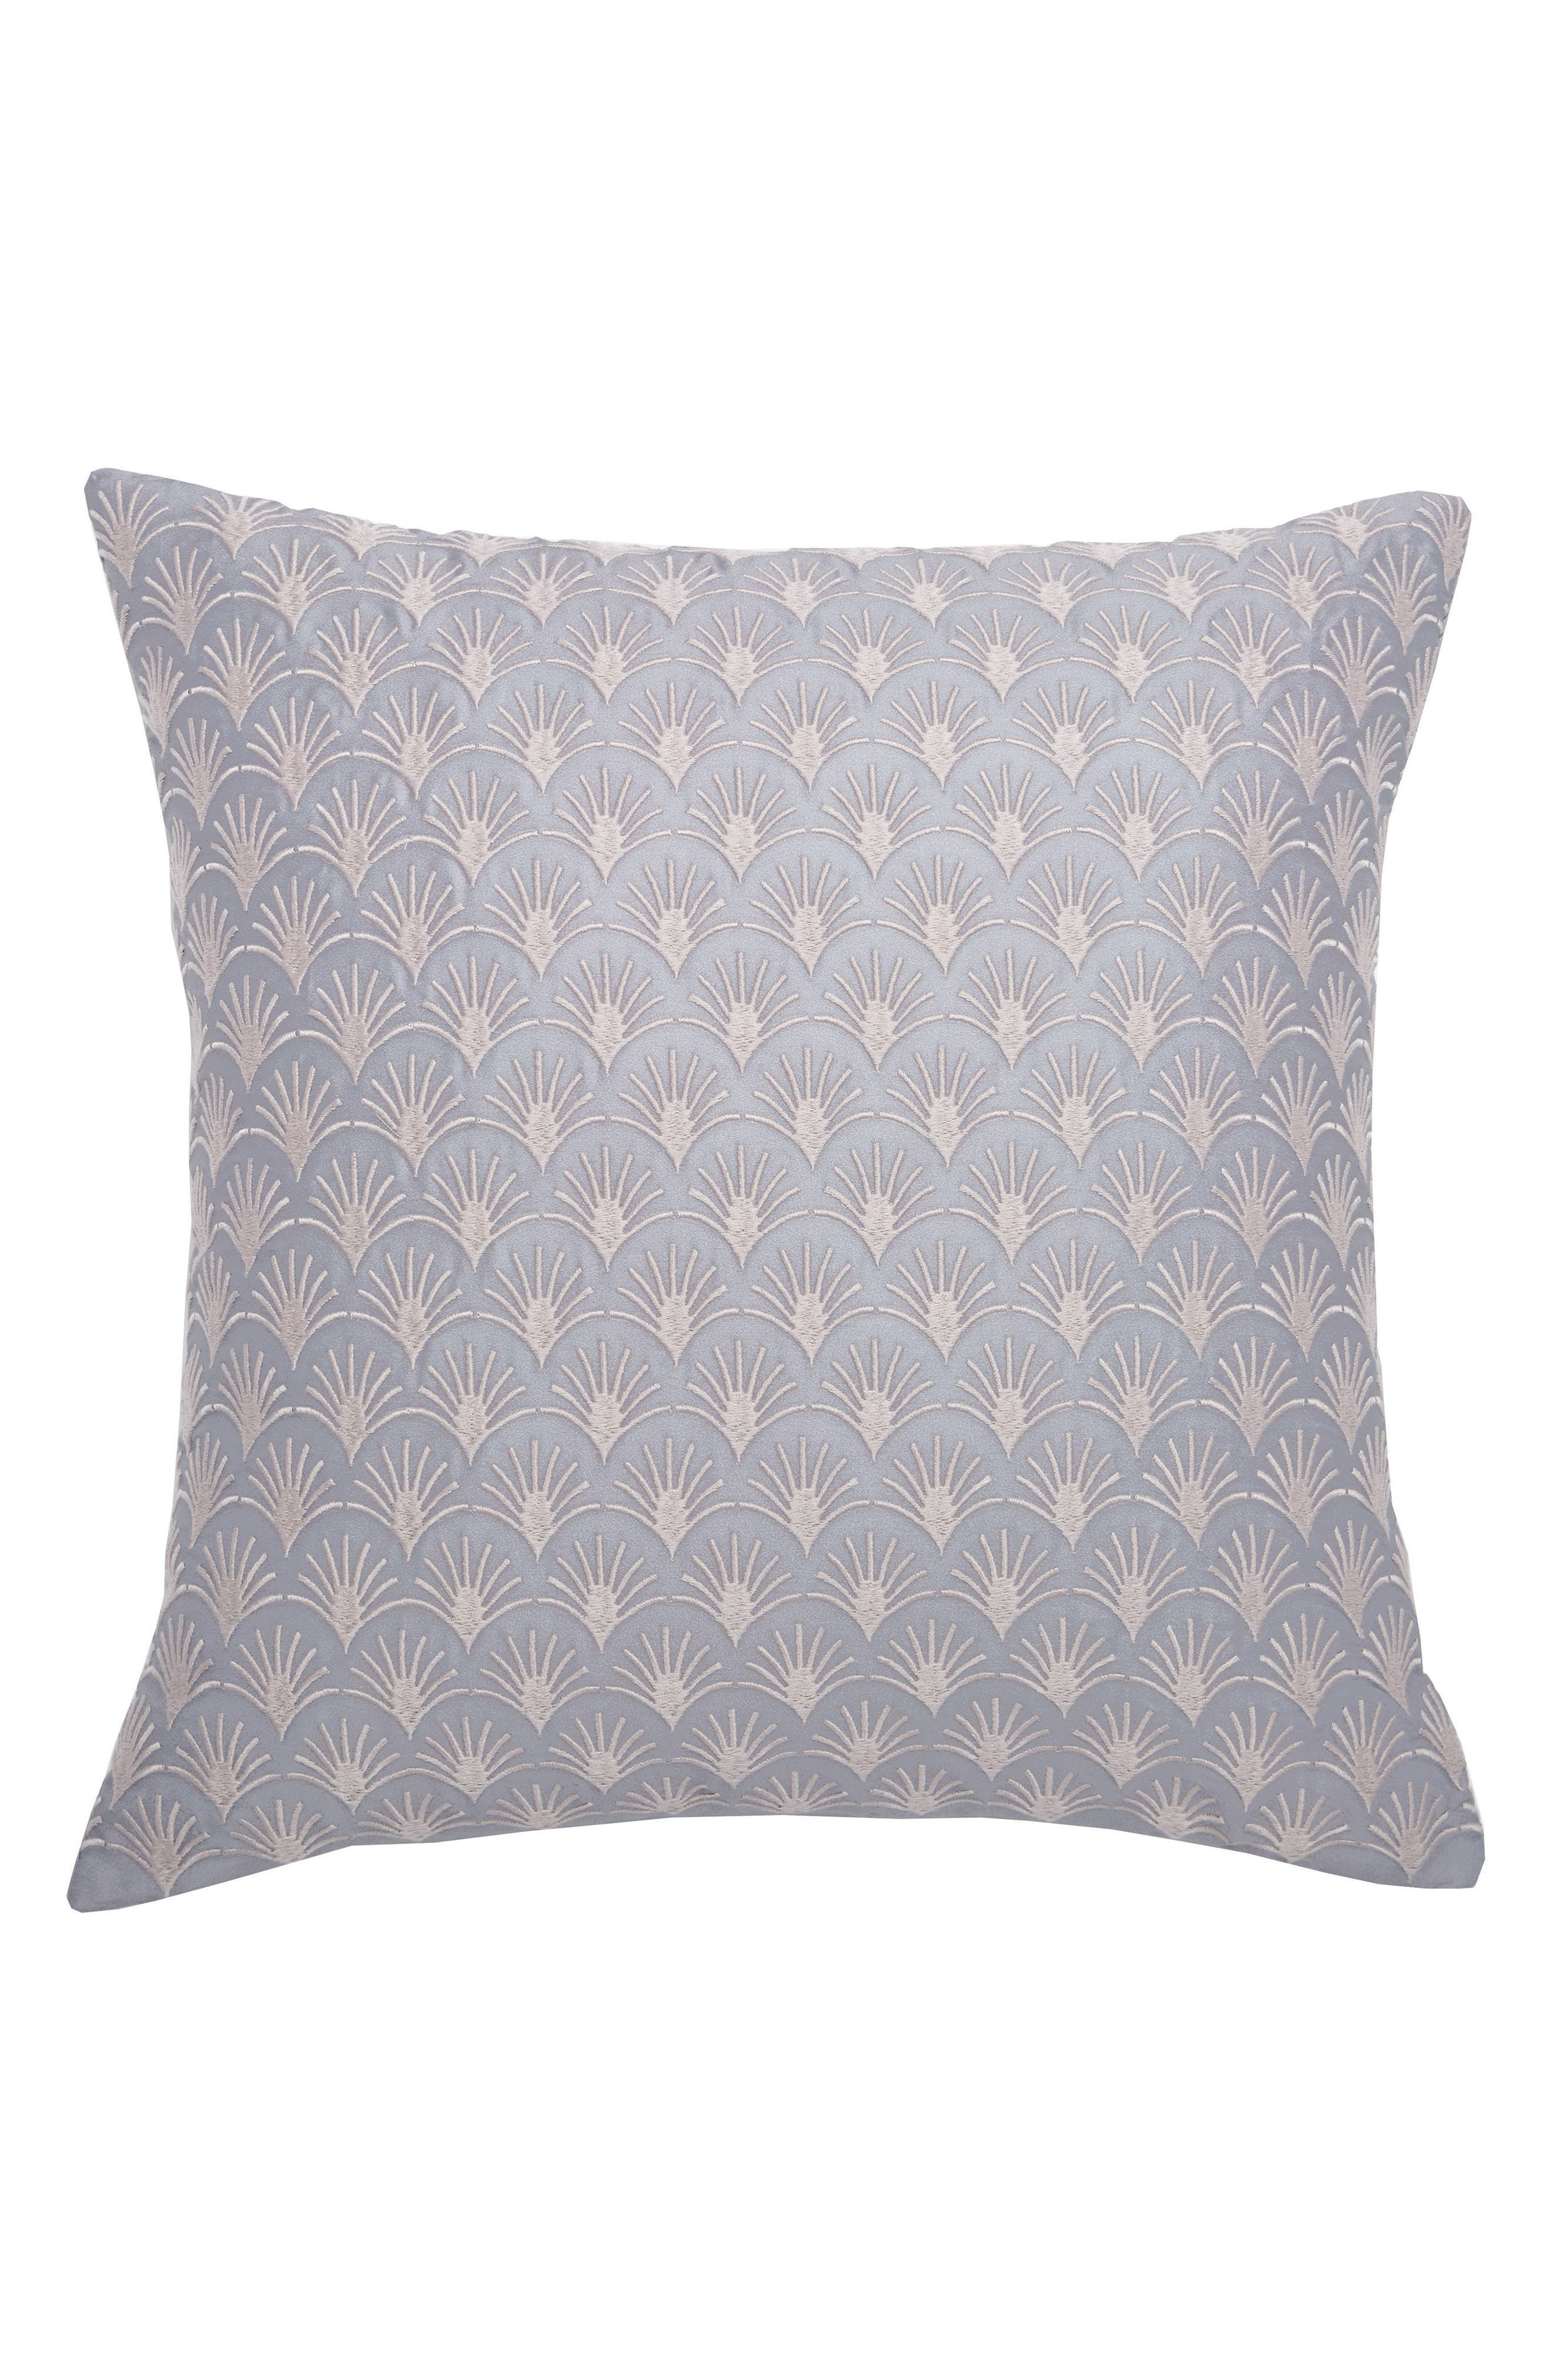 Alternate Image 1 Selected - Ted Baker London Fan Embroidered Pillow